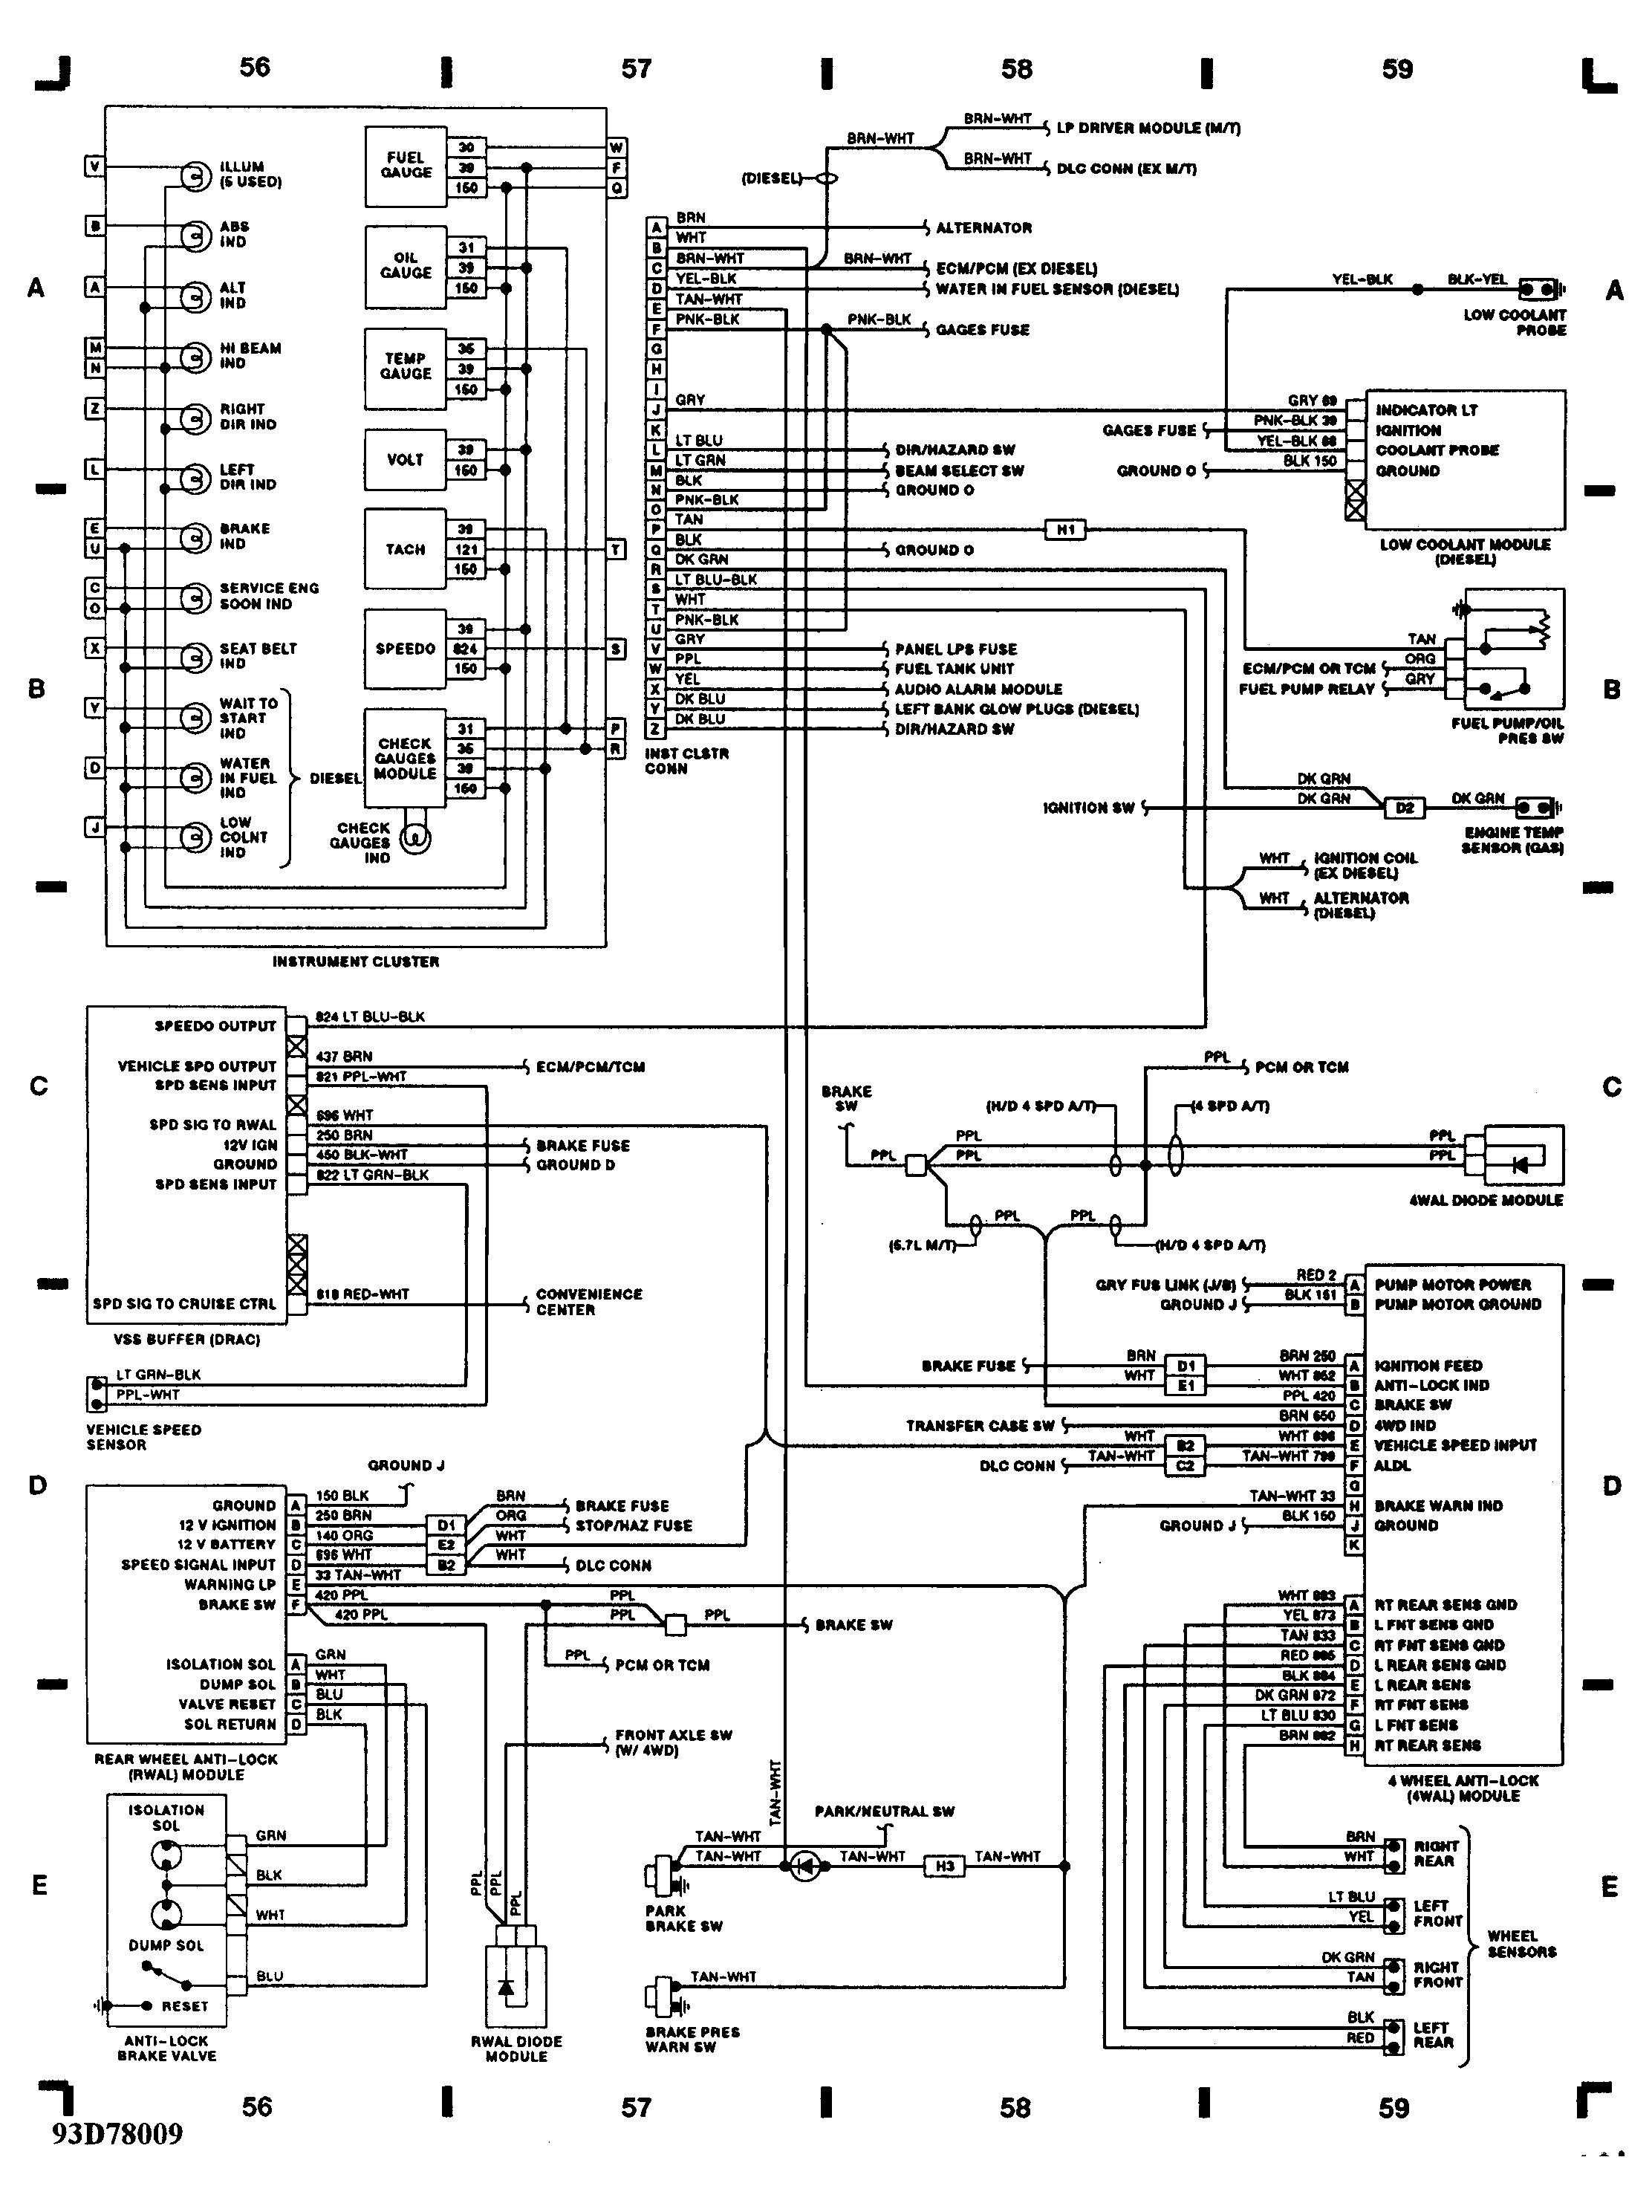 Mazda B2500 Fuel System Diagram Schematics Wiring Diagrams 1988 Isuzu Trooper Parts Schematic 2004 B2300 Portal U2022 Rh Getcircuitdiagram Today 1998 2000